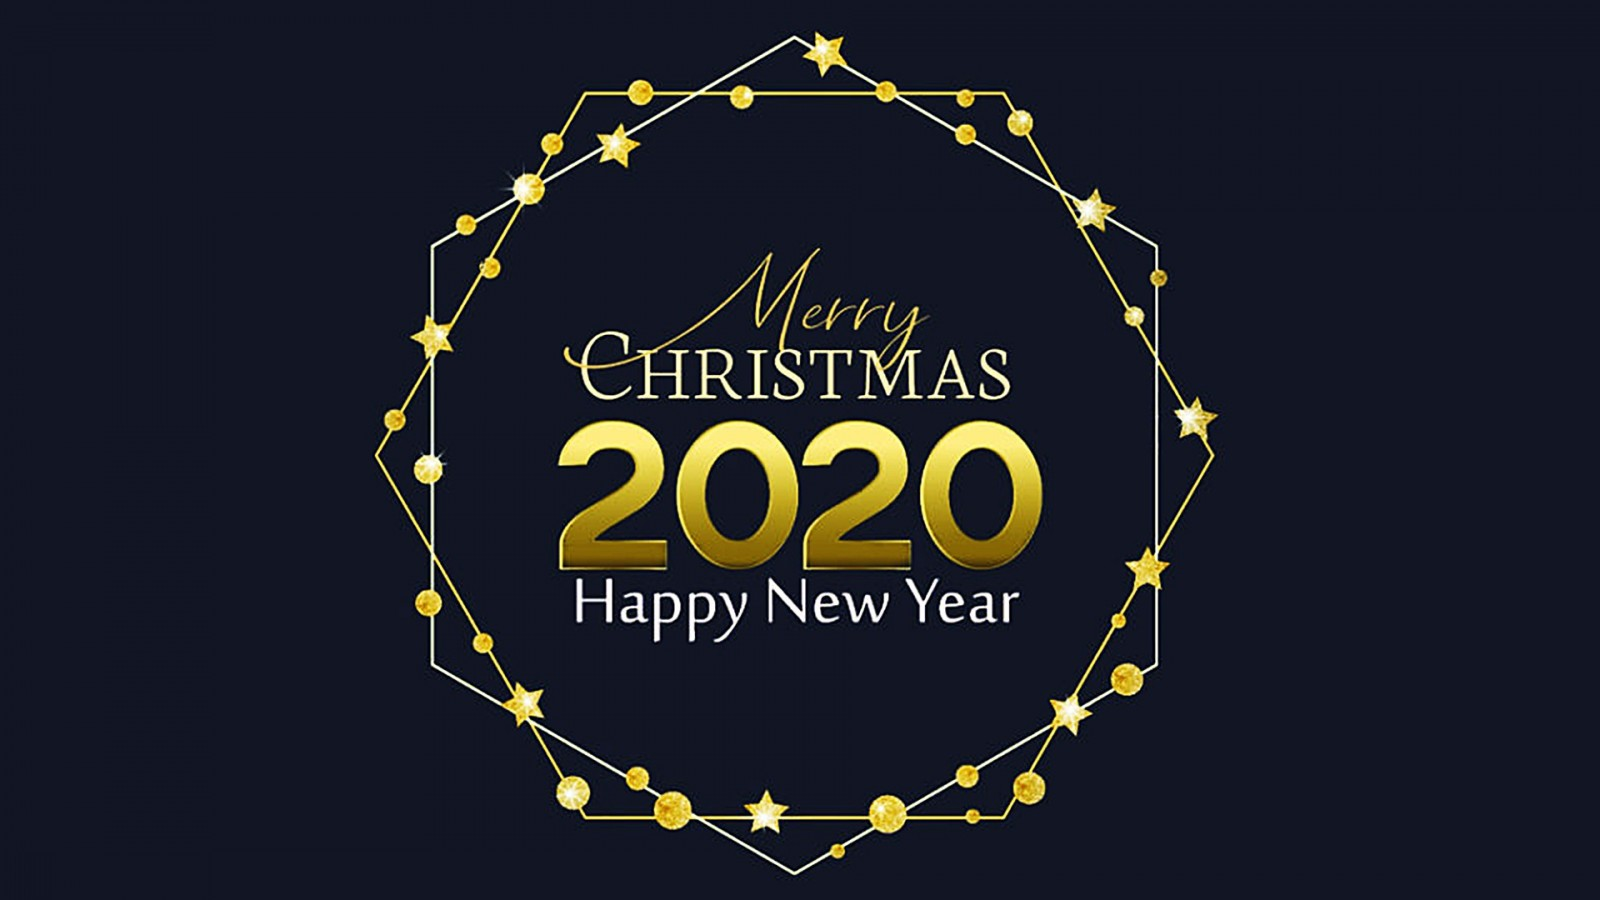 Happy New Year 2020 HD Backgrounds Wallpapers 45548